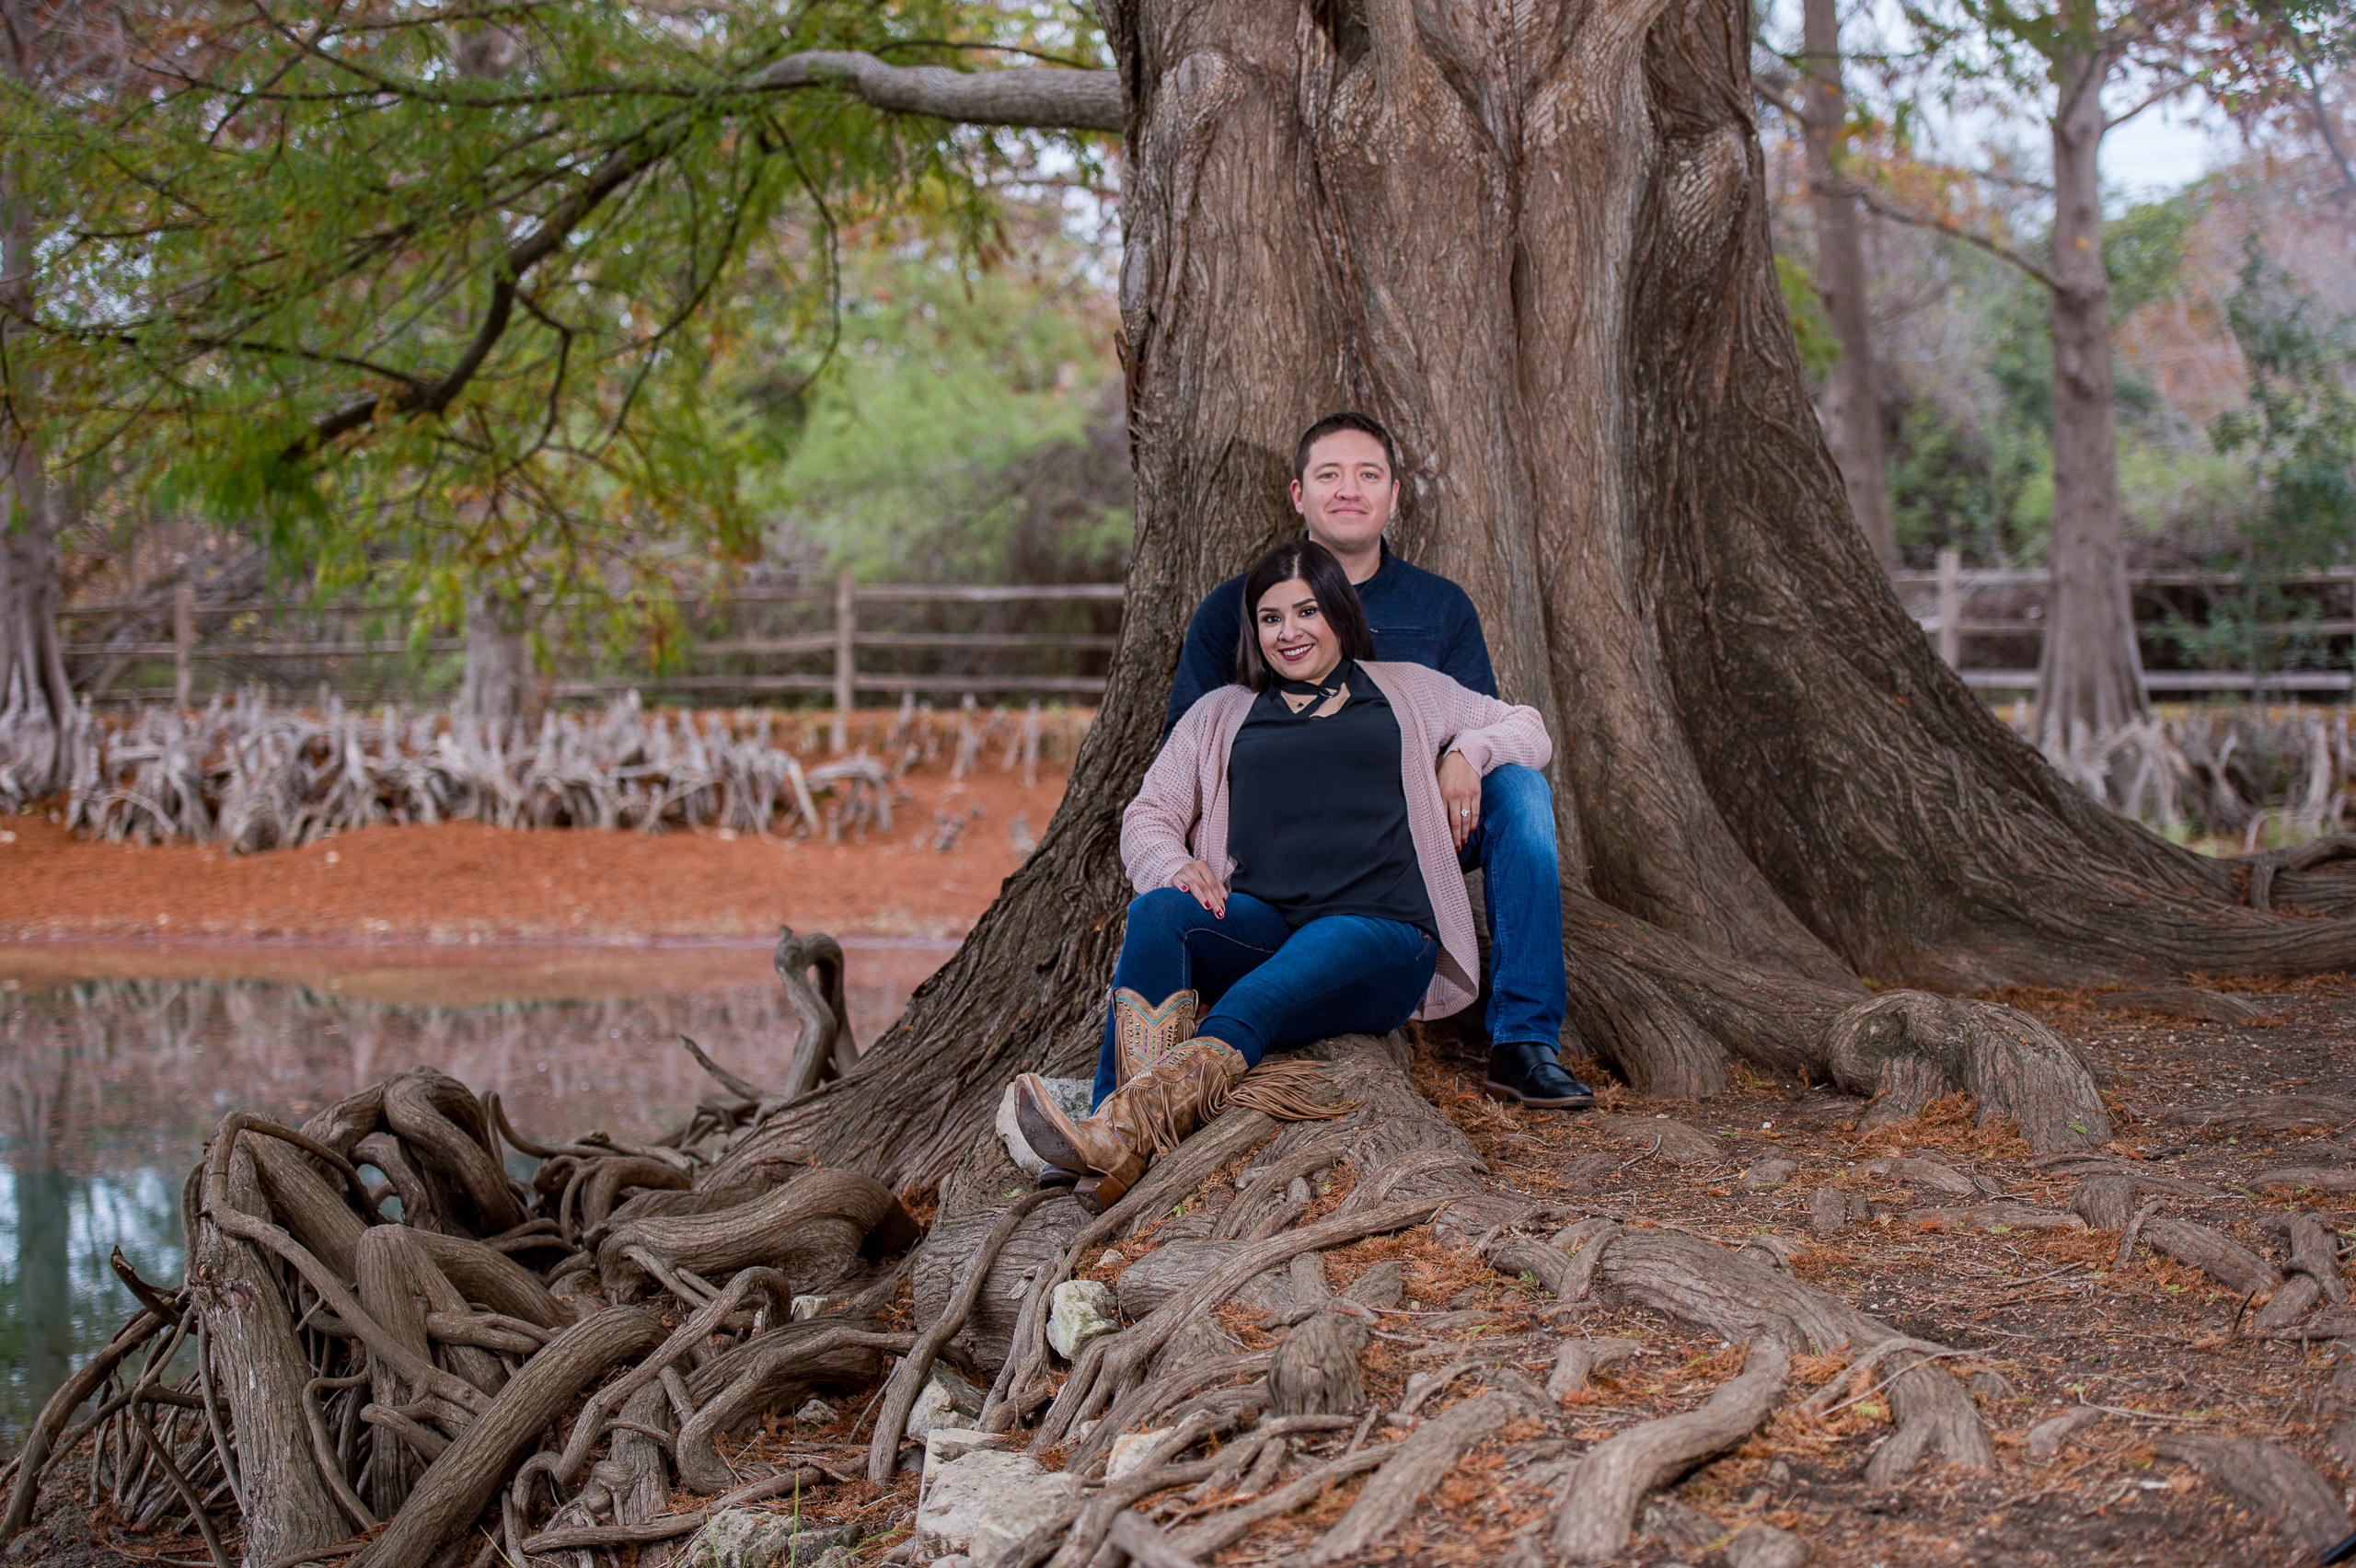 denman-estate-engagement-session-san-antonio-wedding-photographers-_4S24588